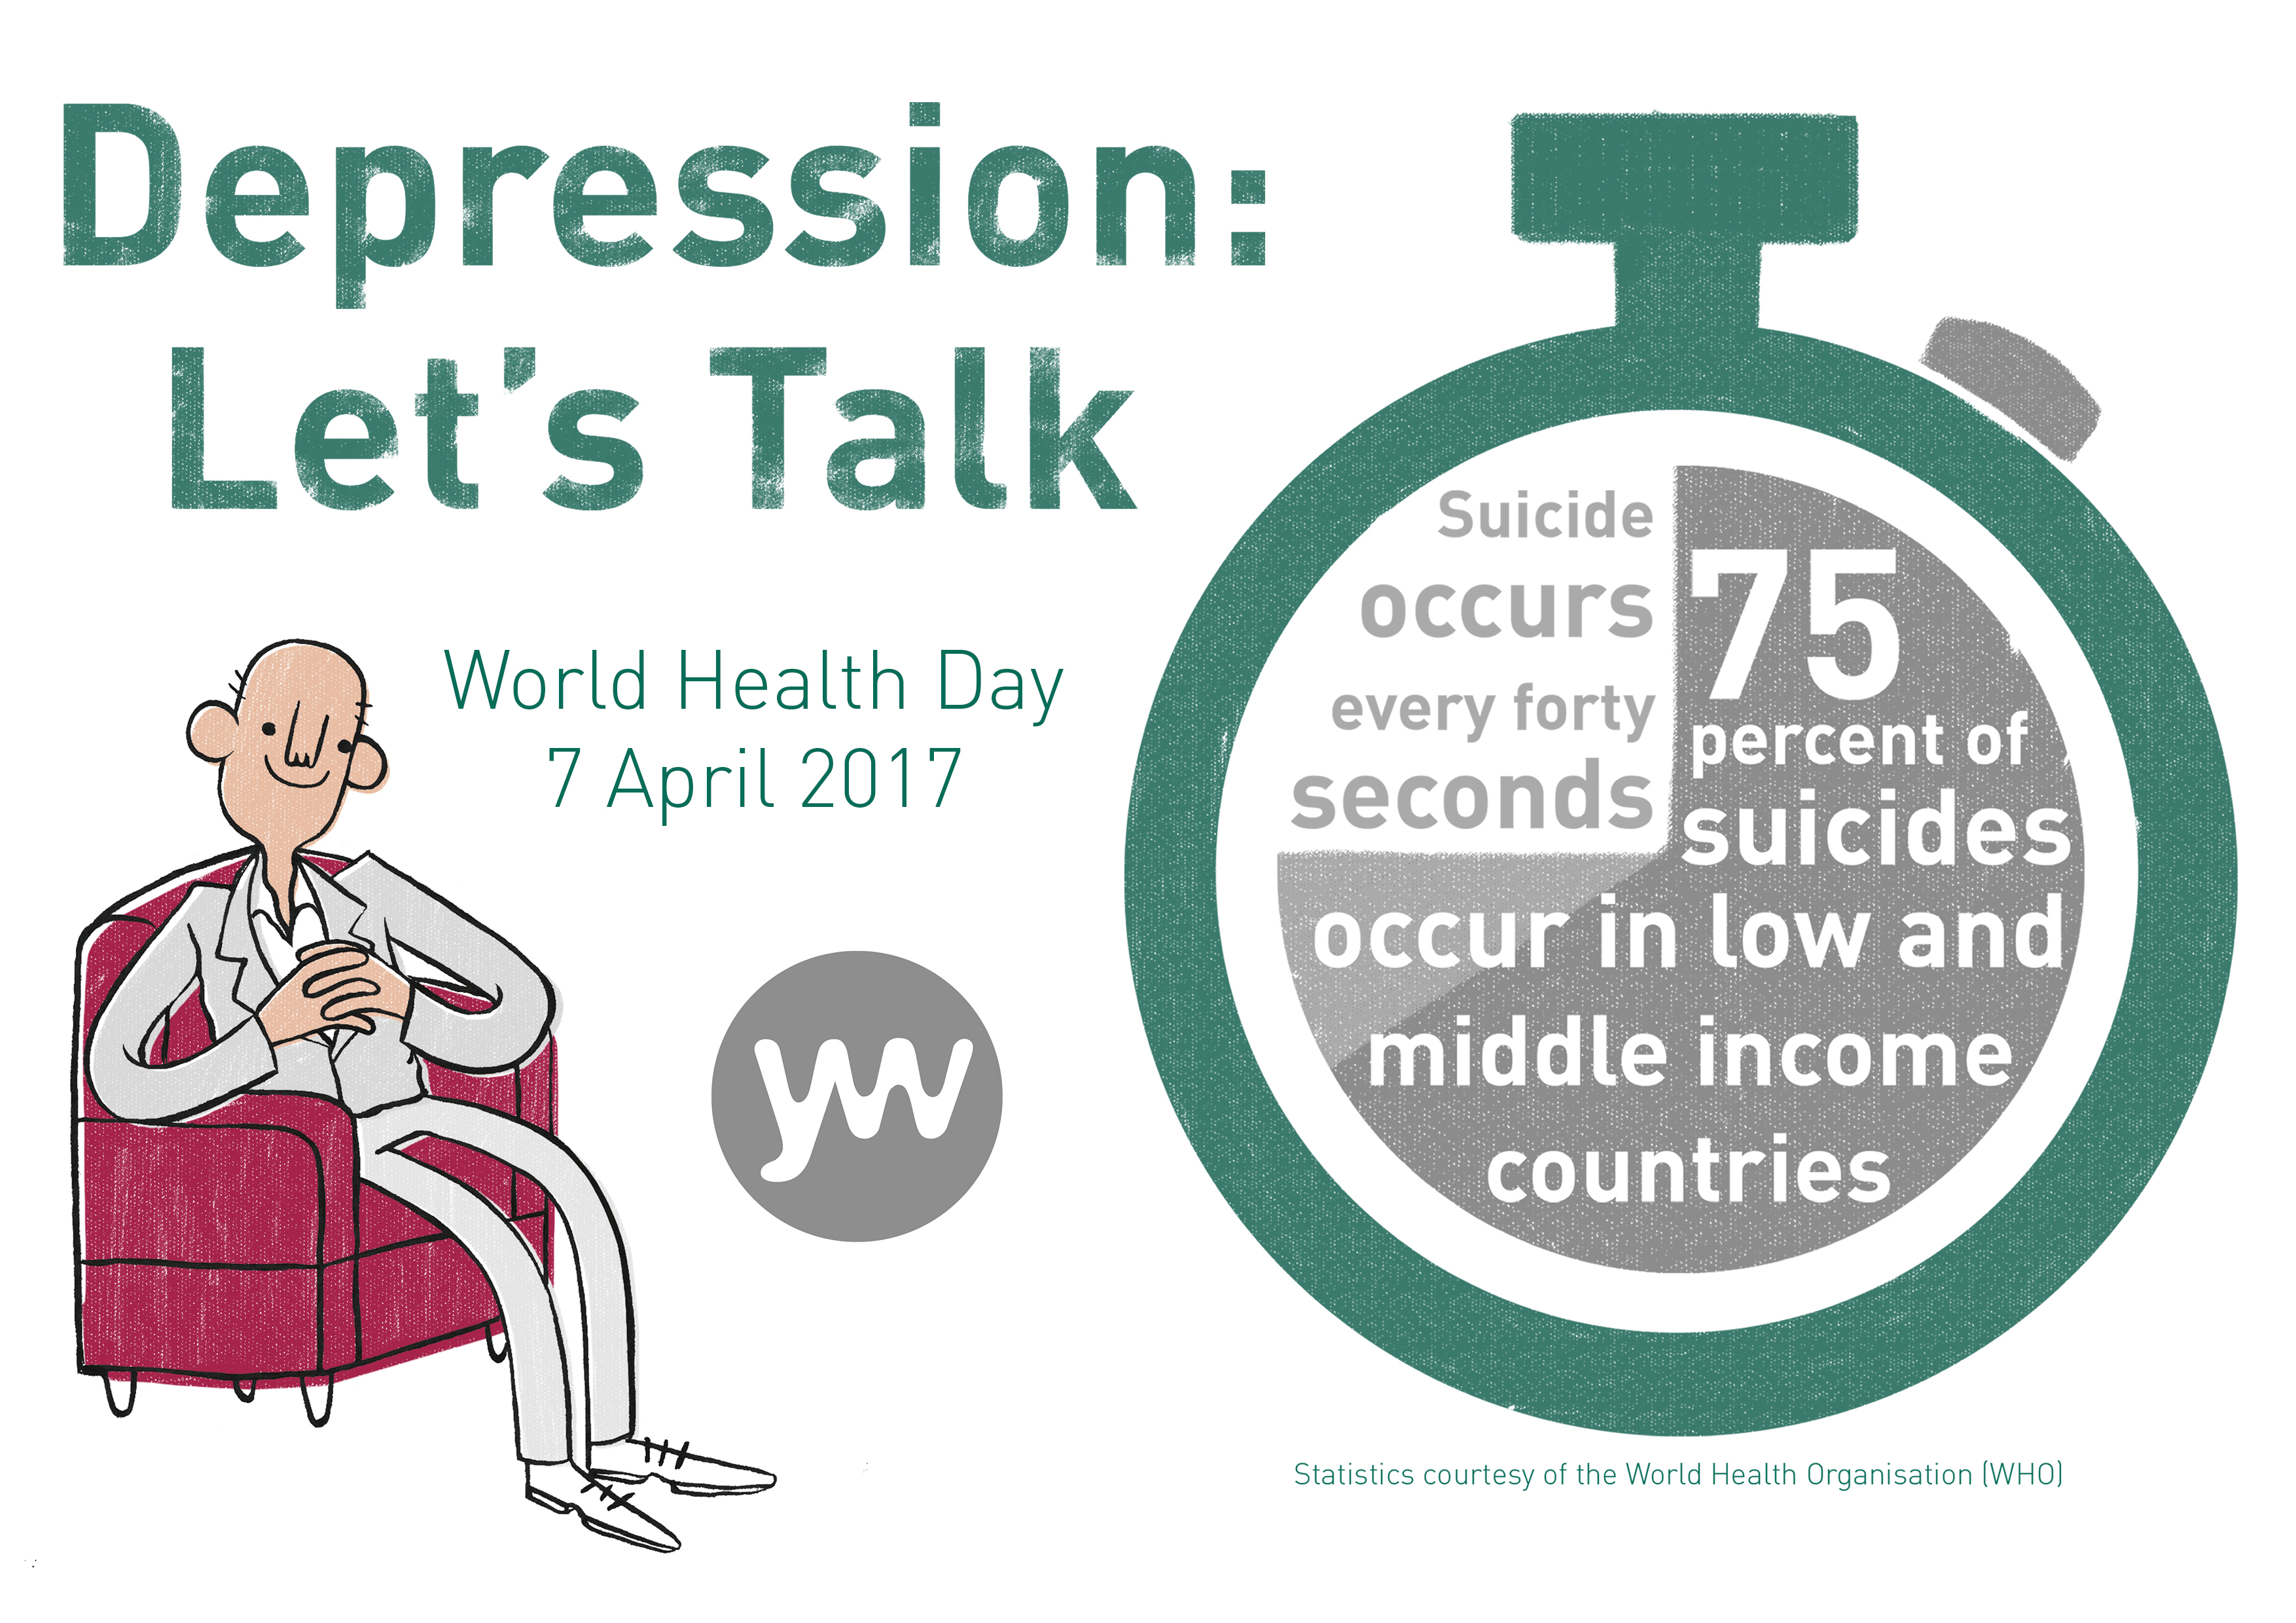 World Health Day - Dealing With Depression